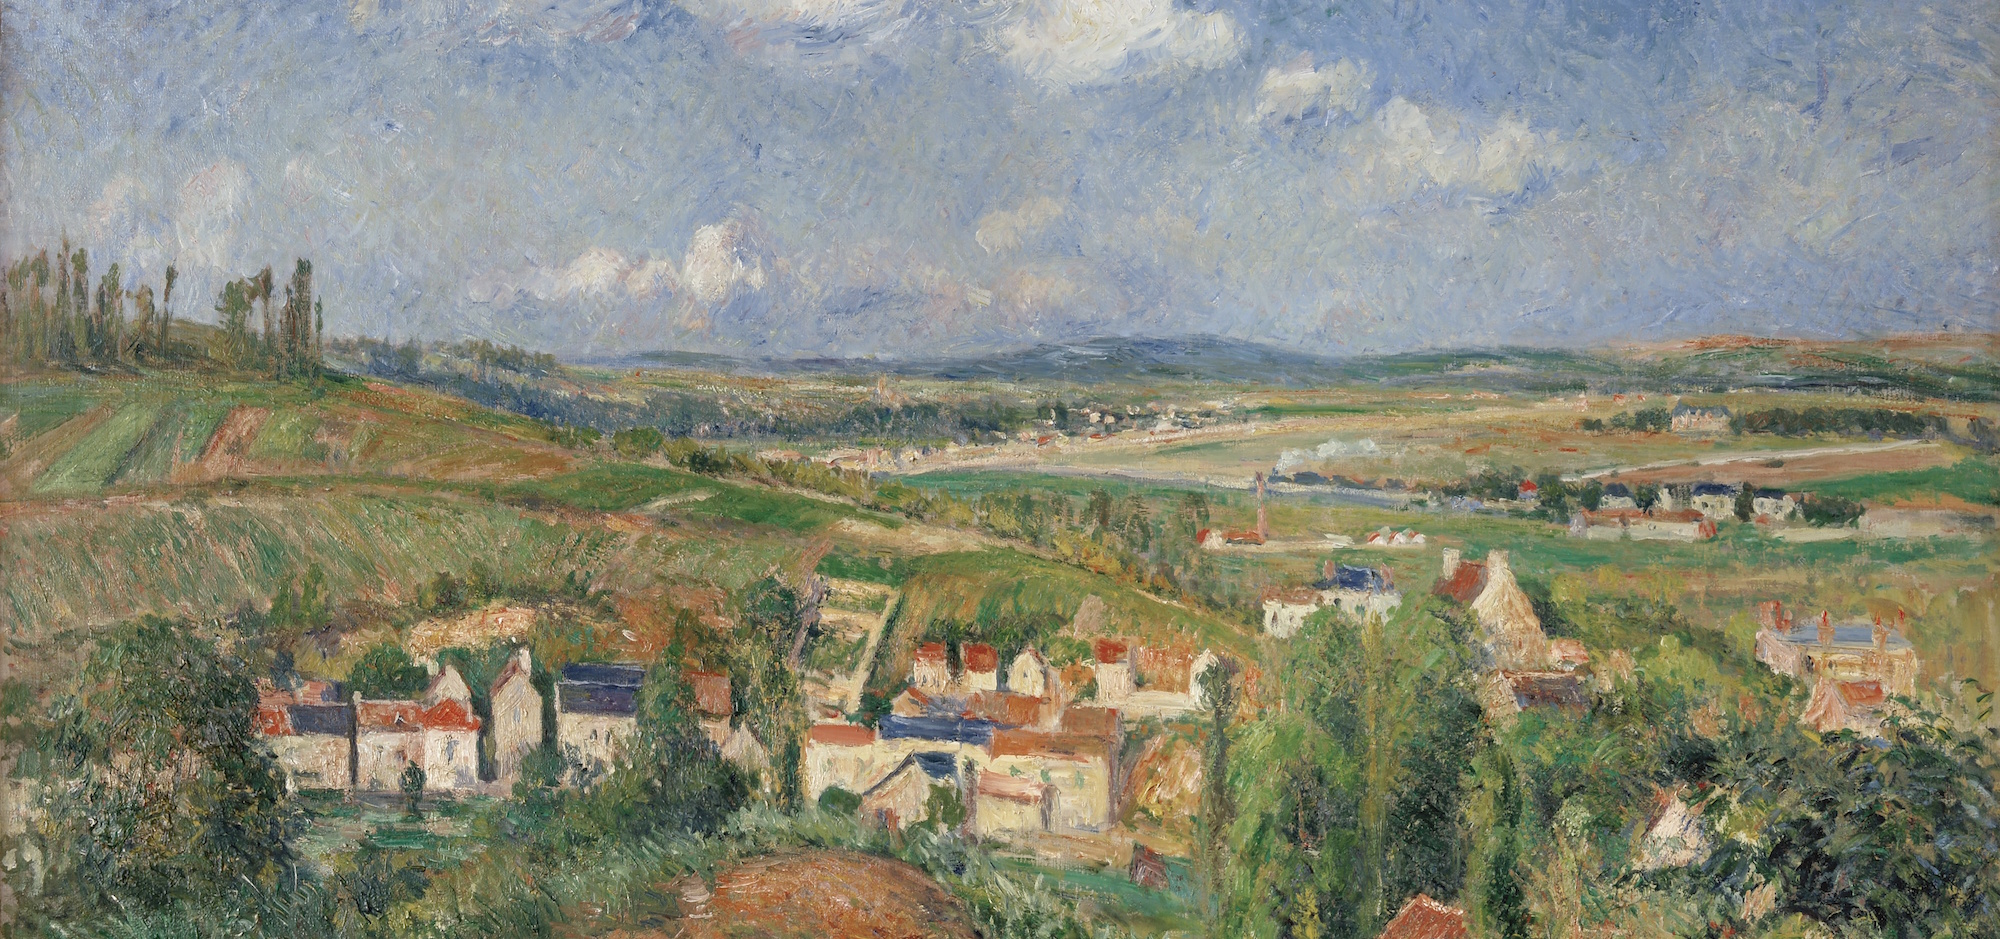 (detail) Camille Pissarro, L'Hermitage in Summer, Pontoise, 1877, oil on canvas, 22 3/8 x 36 inches (Helly Nahmad Gallery, New York)